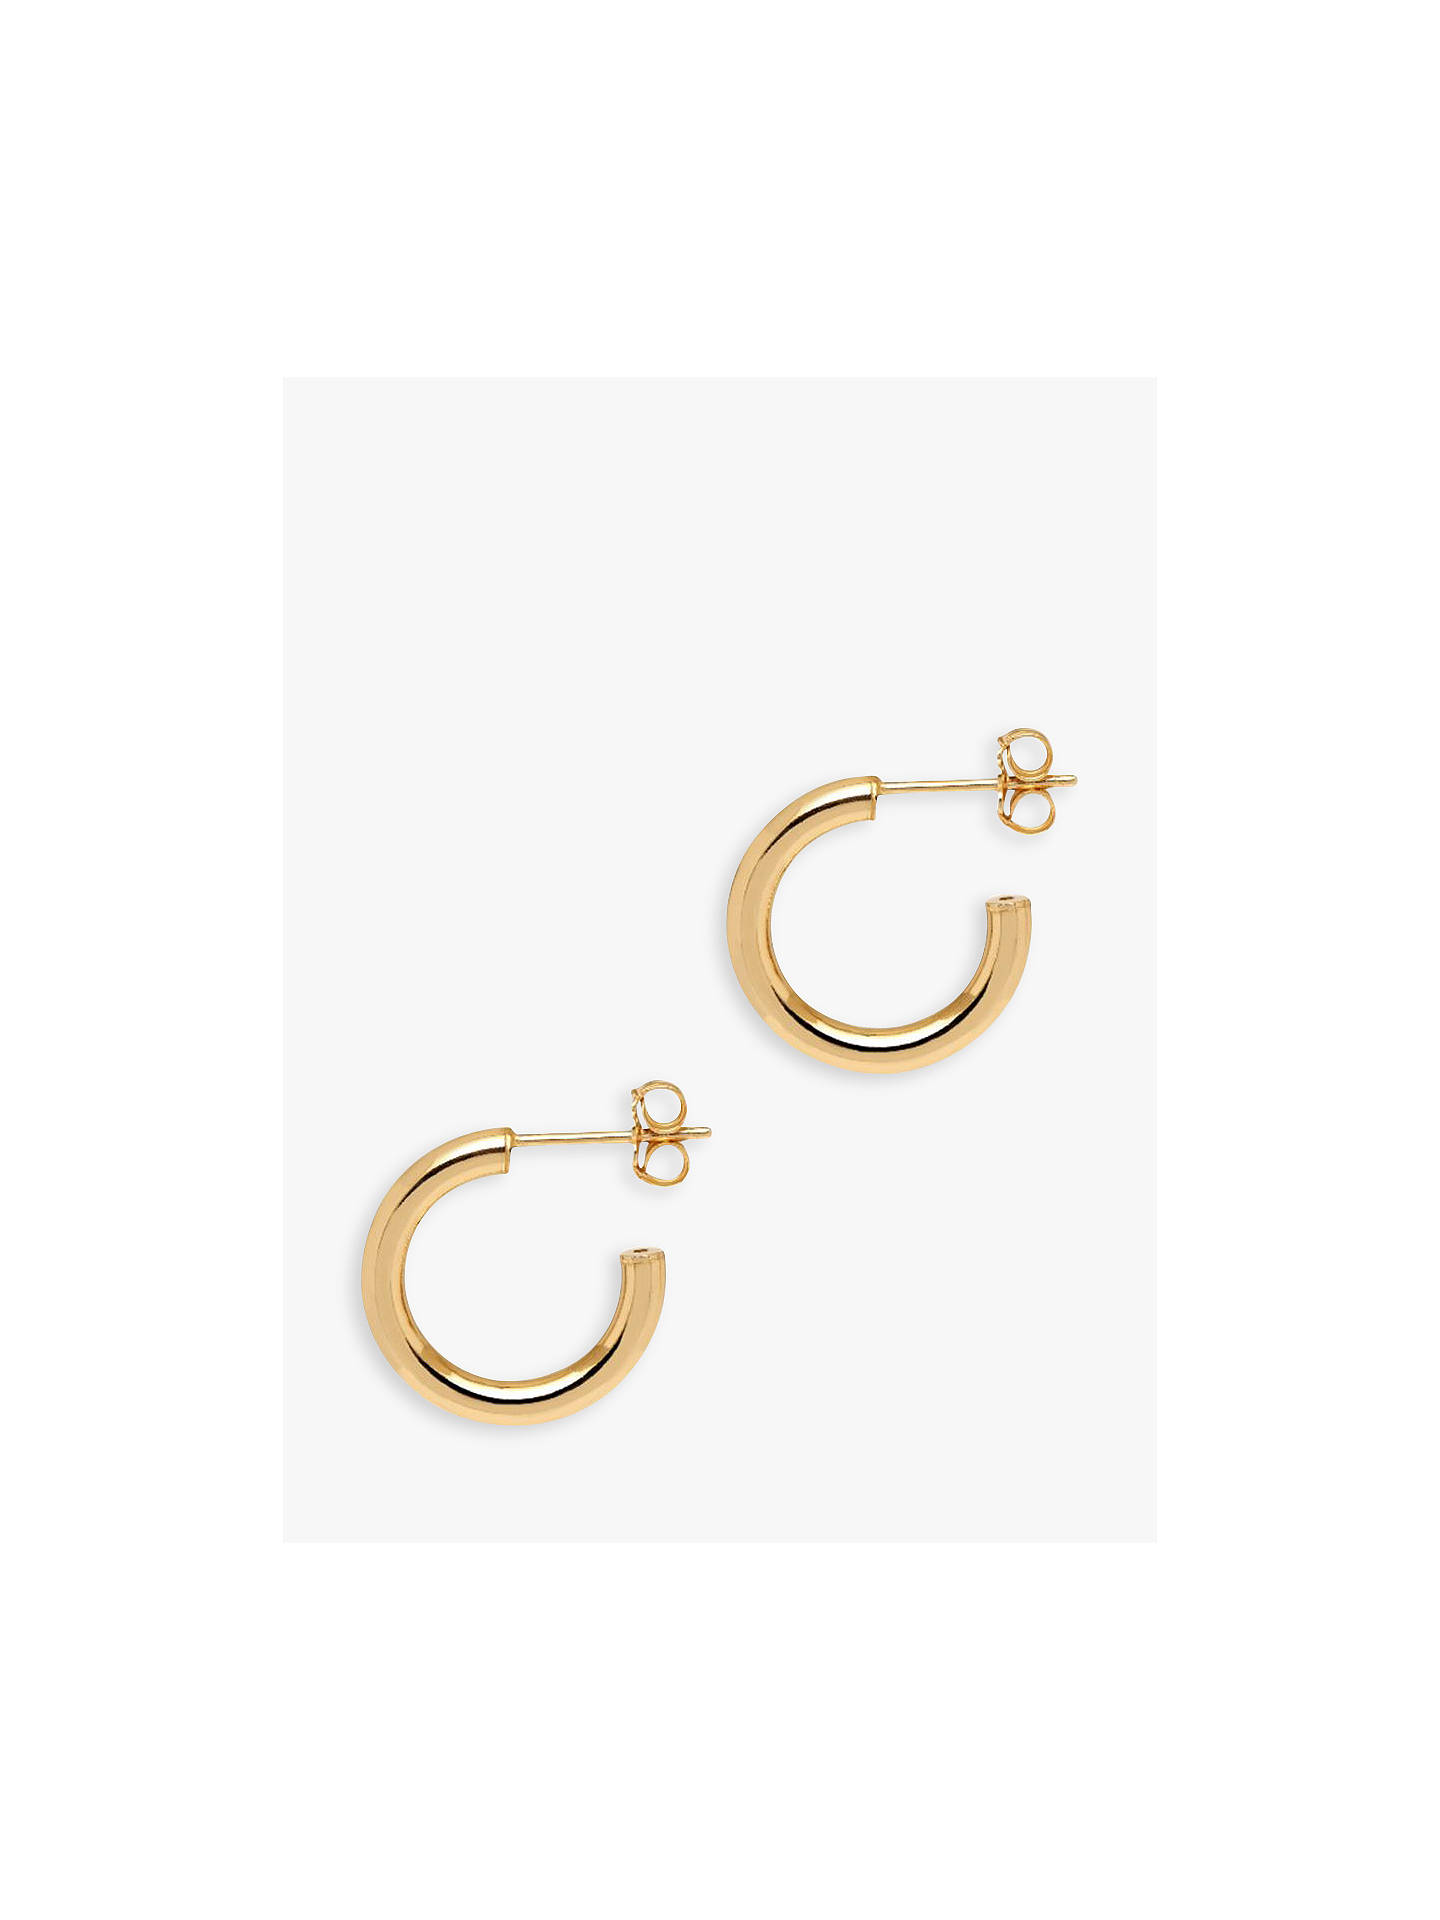 BuyThe Hoop Station La Napoli Mini Hoop Earrings, Gold Online at johnlewis.com